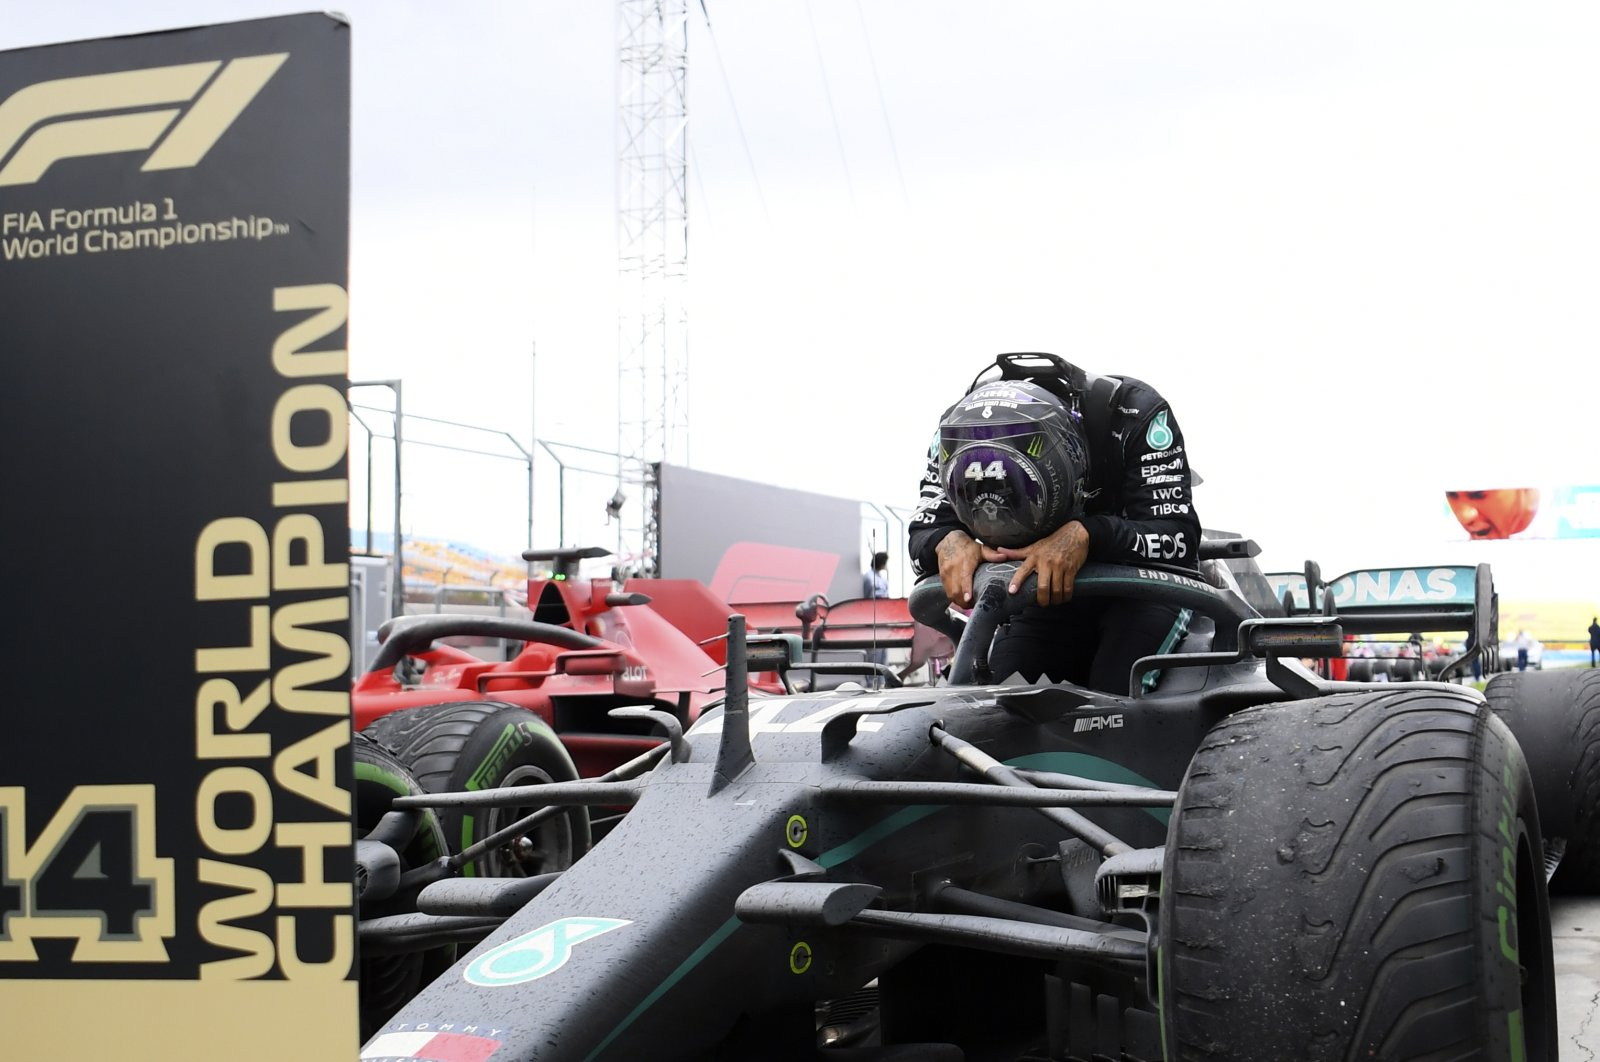 Mercedes driver Lewis Hamilton reacts after winning the Turkish Formula One Grand Prix at the Istanbul Park circuit, in Istanbul, Turkey, Nov. 15, 2020. (AP Photo)